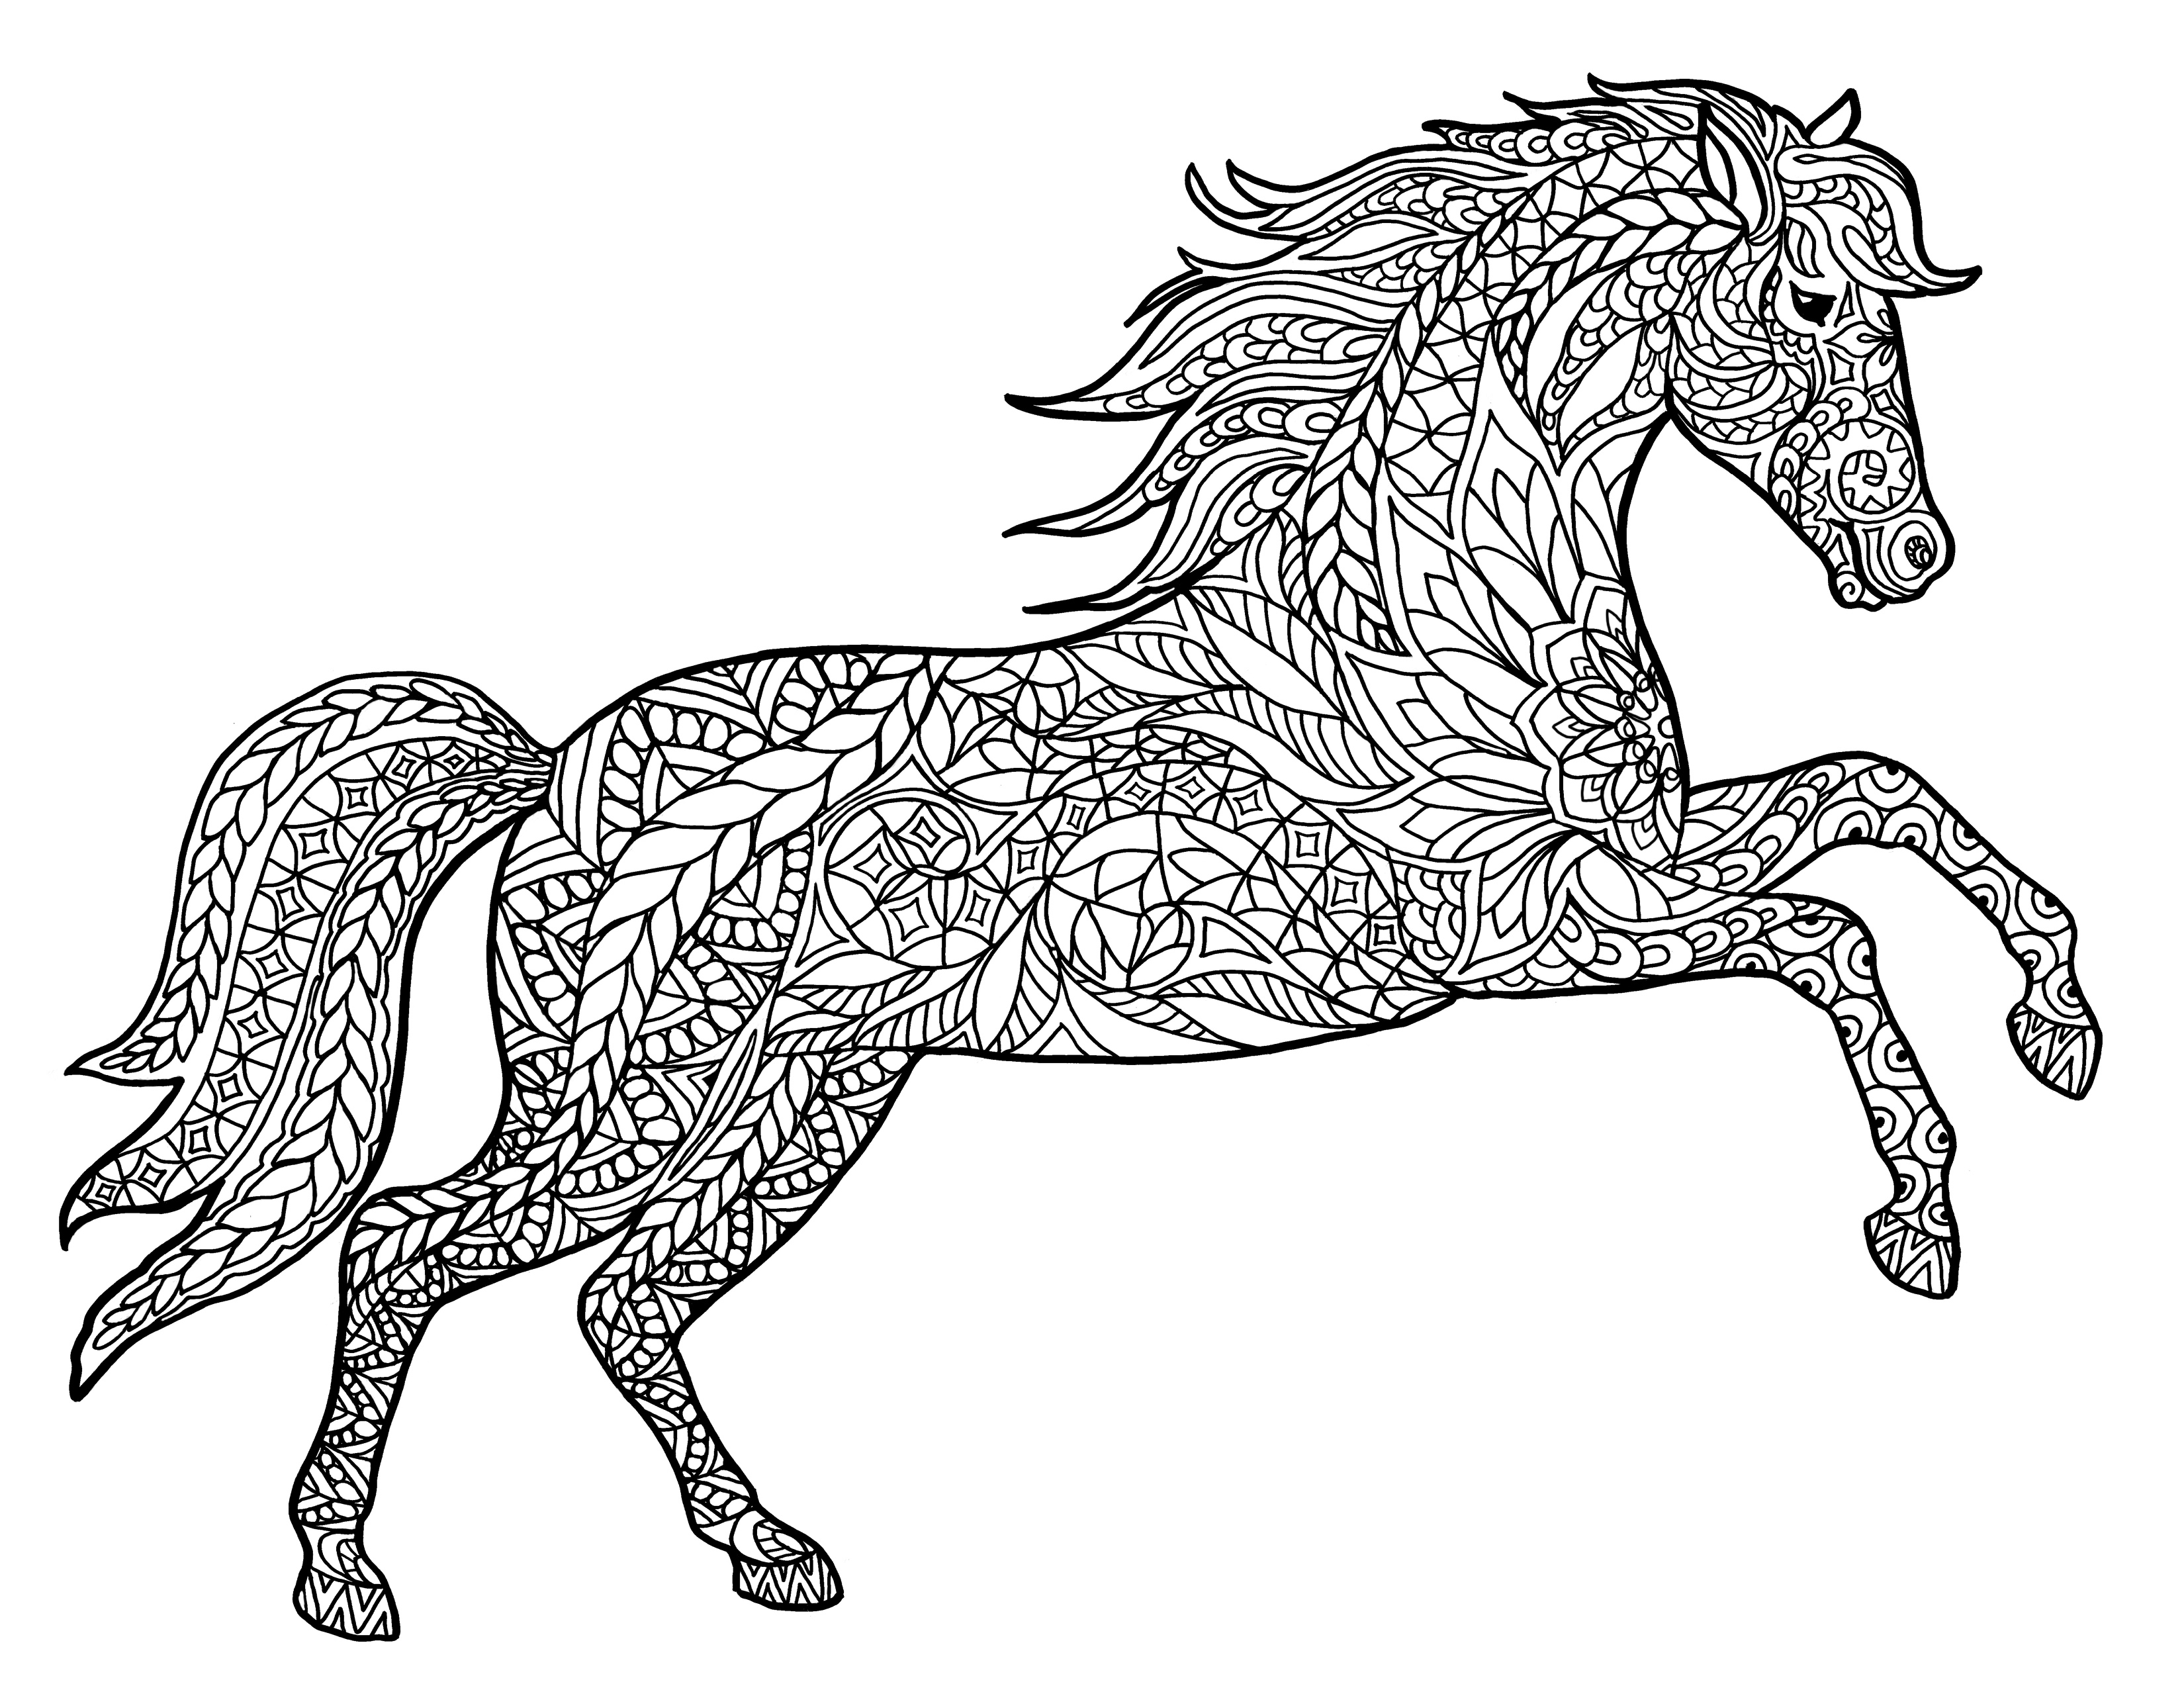 horse adult coloring pages - photo#2